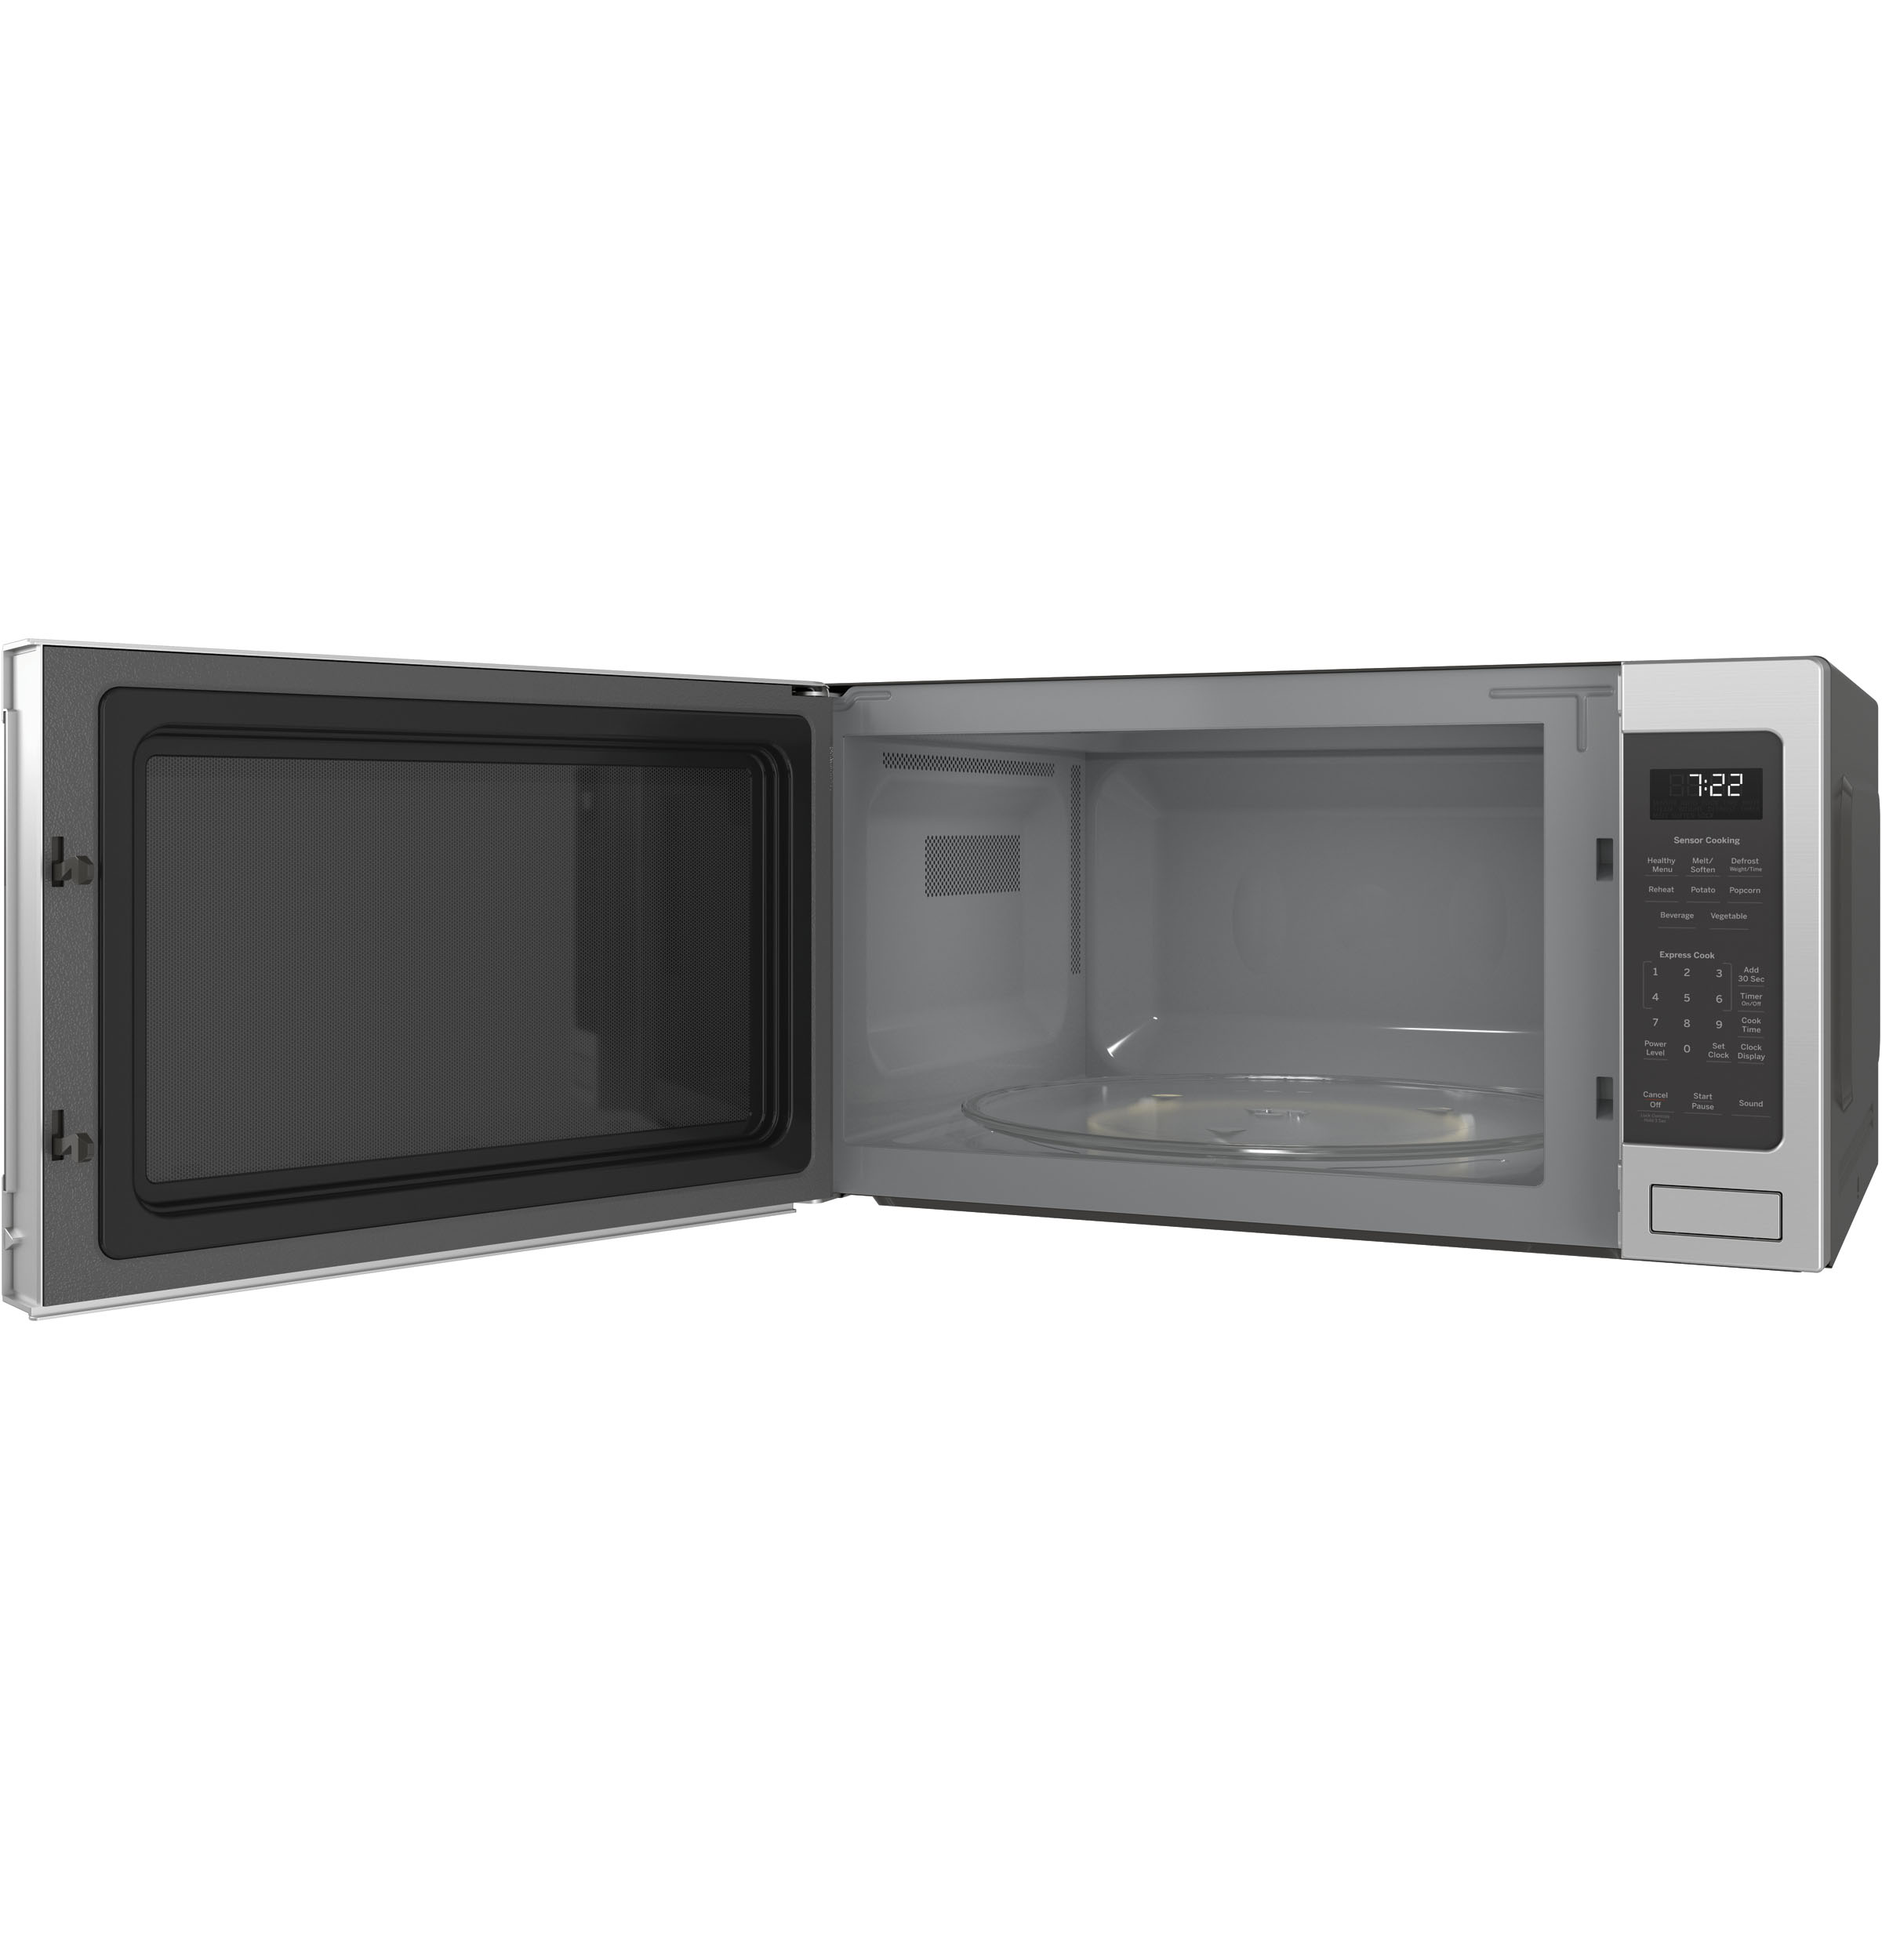 Model: PES7227SLSS | GE Profile™ Series 2.2 Cu. Ft. Countertop Sensor Microwave Oven